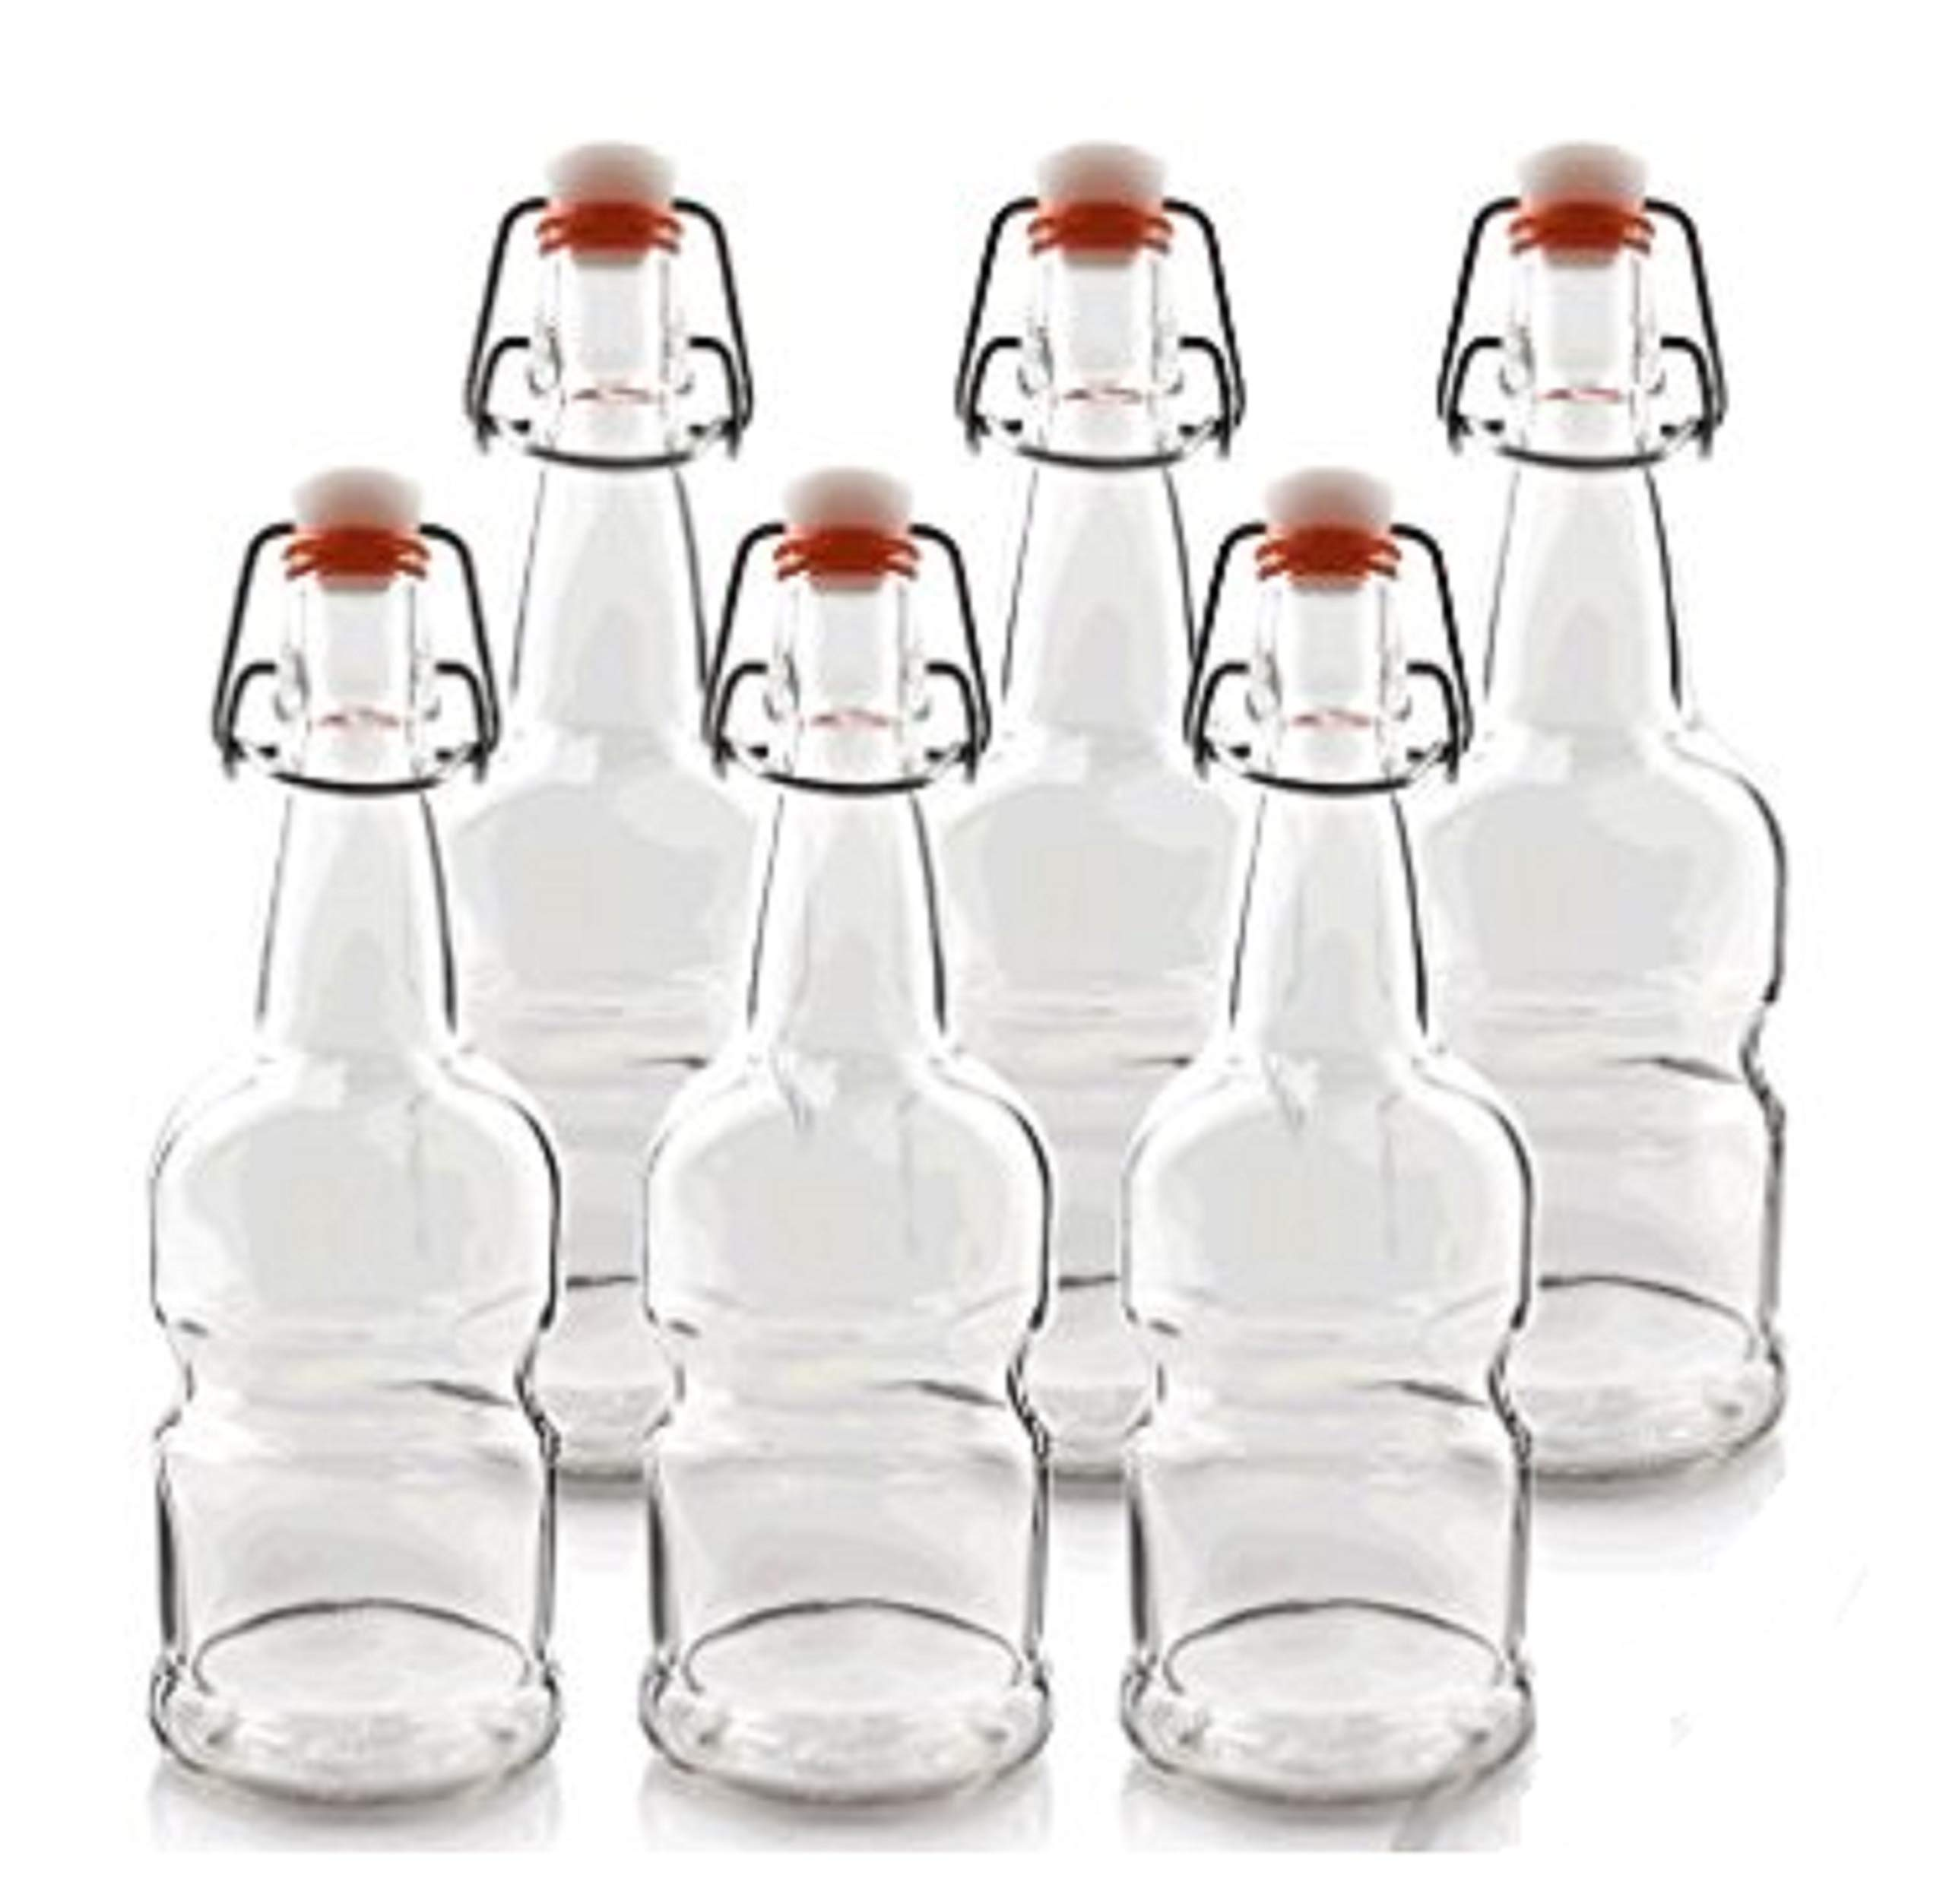 Teikis 16oz Kombucha/Beer / Glass Bottles (6 Pack,Clear) with Easy Cap (Better Grip - Non Slip)